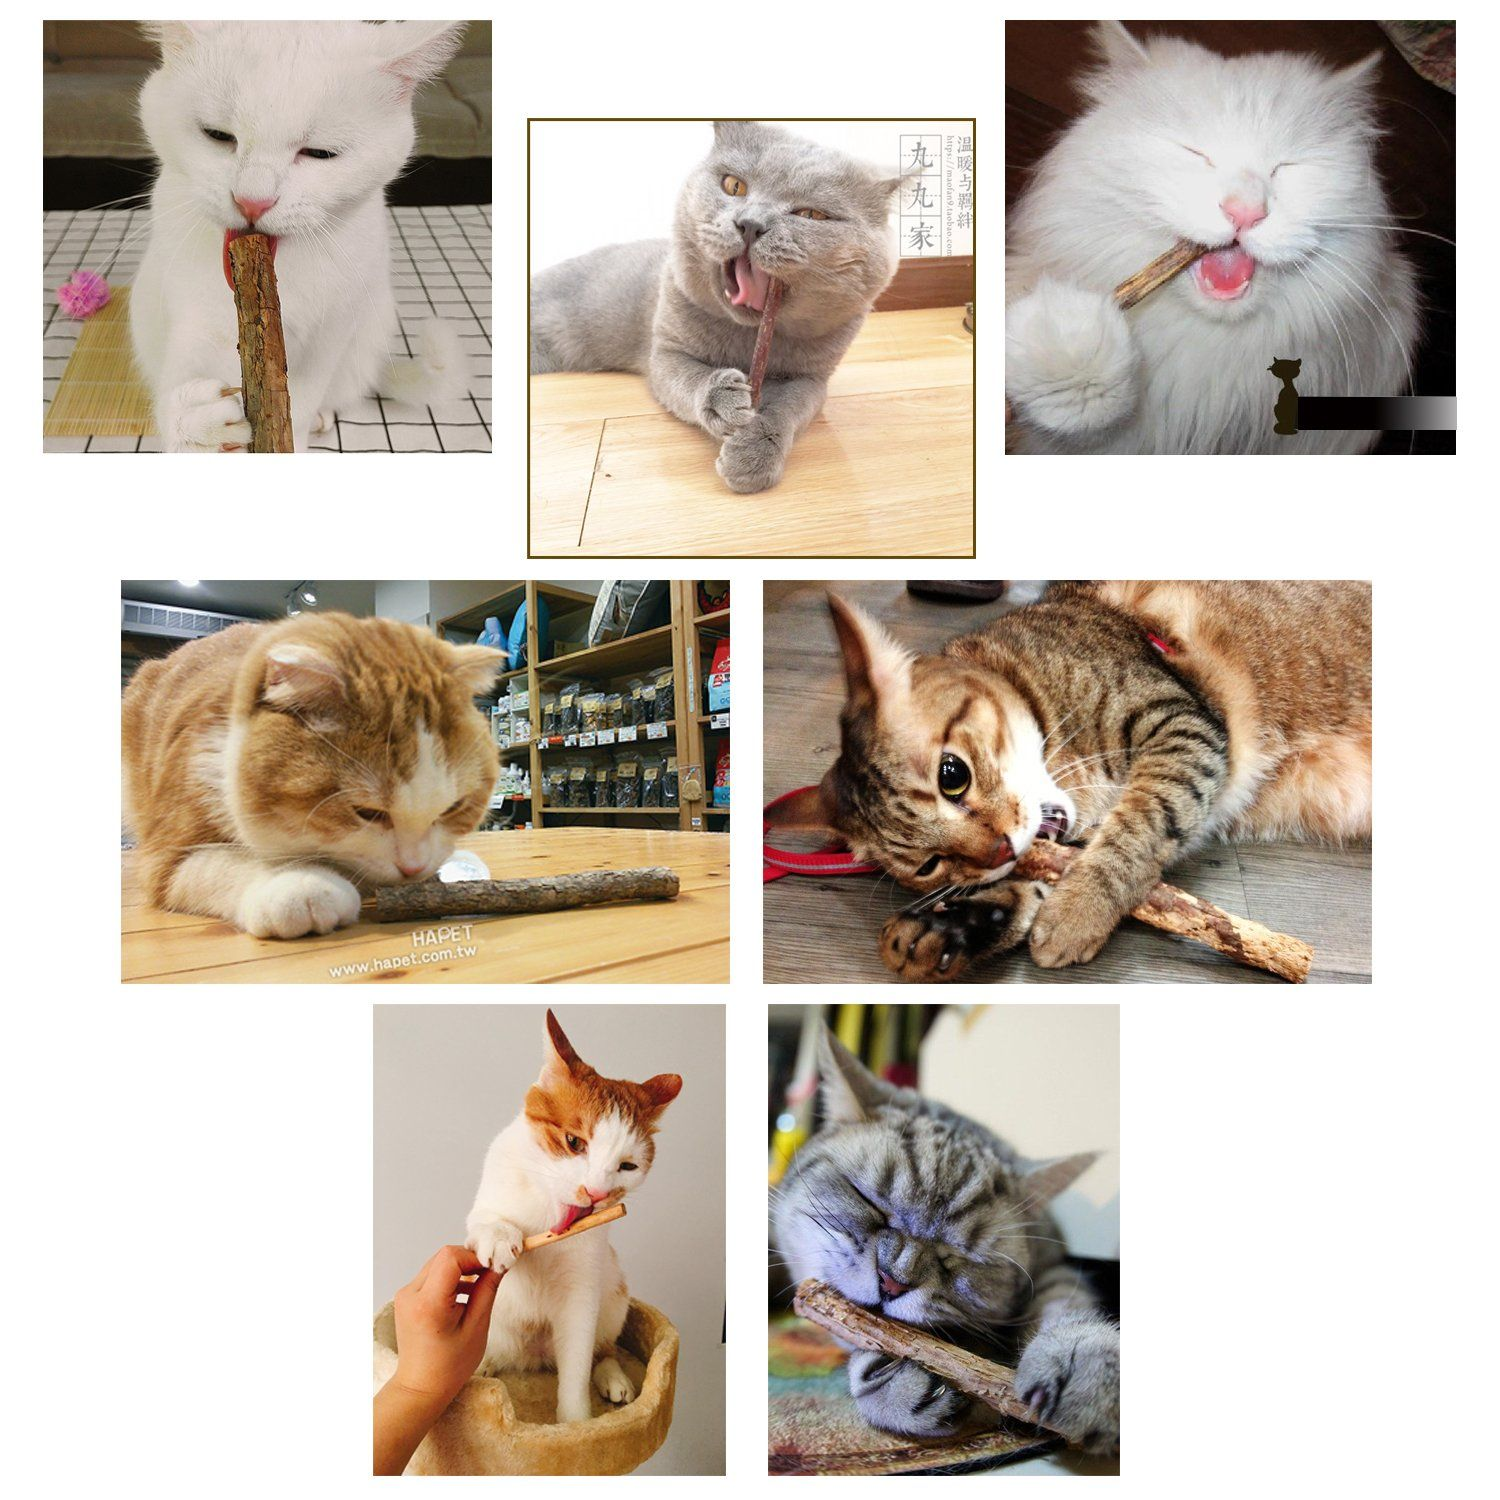 Adorable Pets Cat Catnip Sticks 6 Pack Natural Matatabi Teeth Grinding Chew Toy Healthy Care Organic Silvervine Dental Cat Toys Cute Animals Cats And Kittens